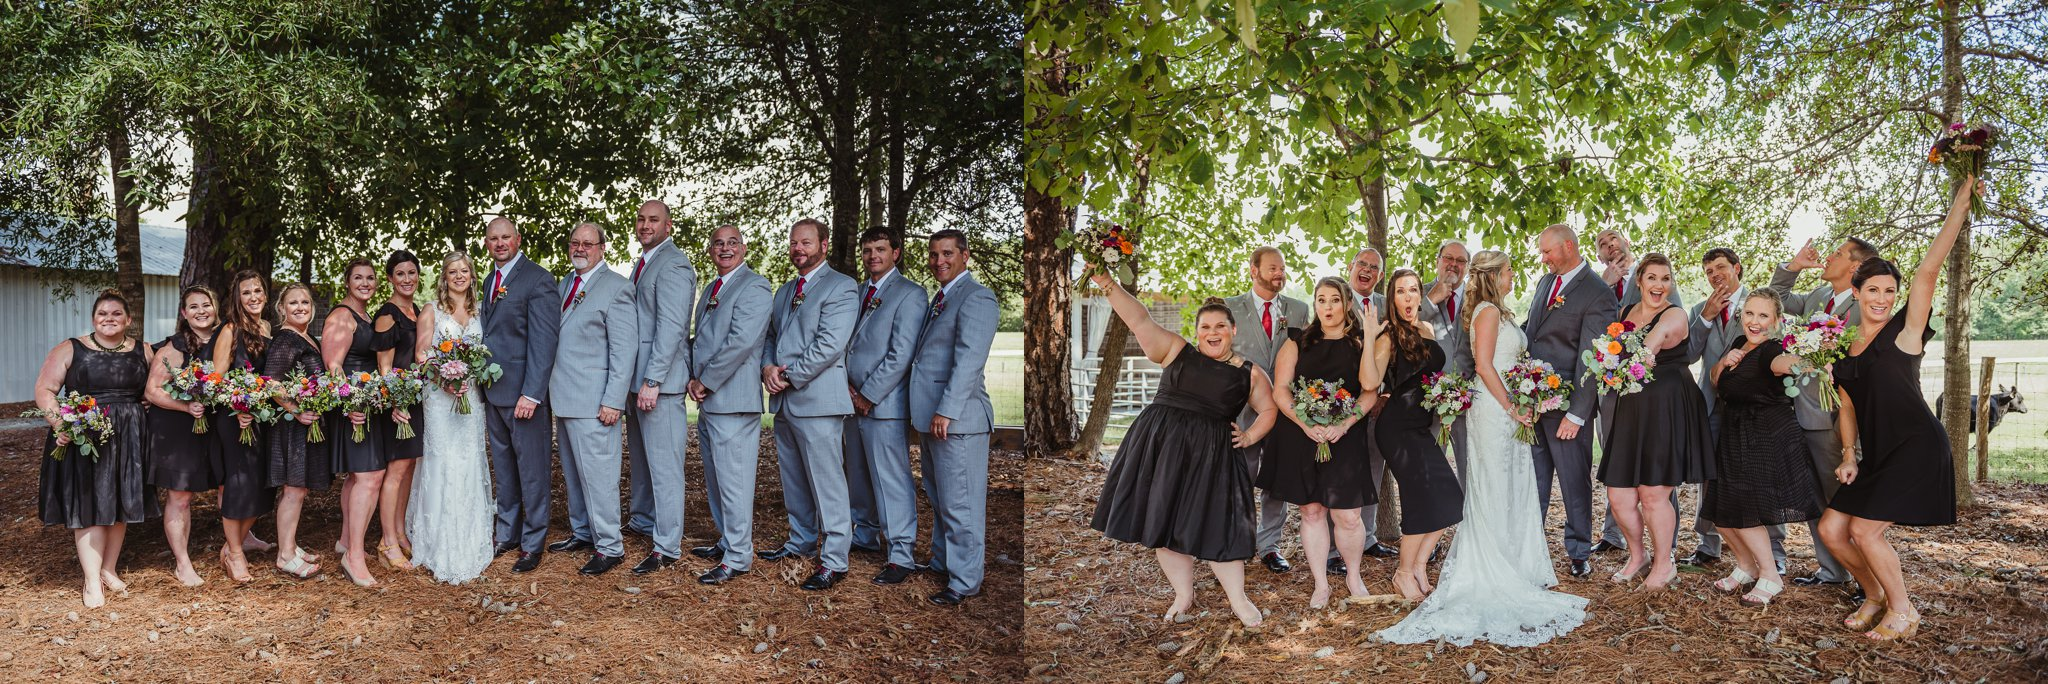 The bride and groom and their bridal party pose for portraits with Rose Trail Images after their wedding ceremony at Cedar Grove Acres near North Carolina.